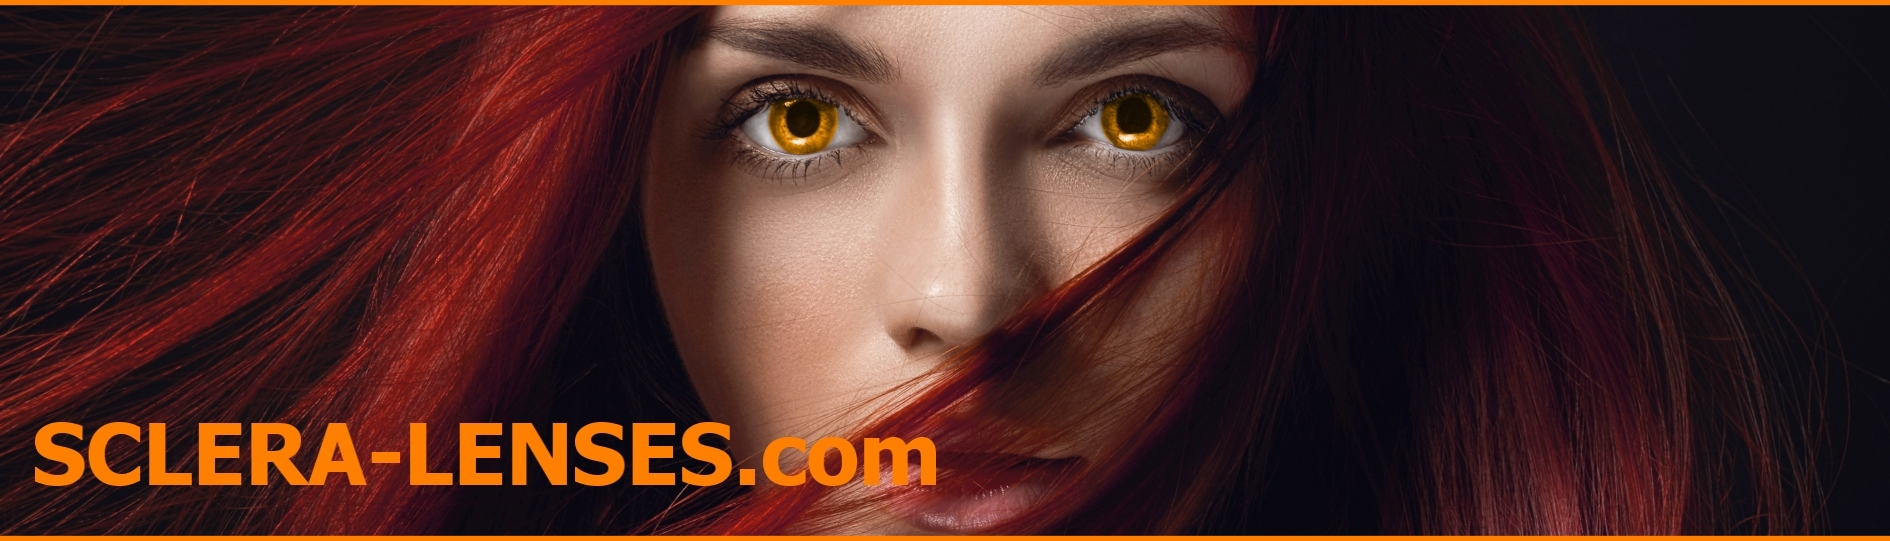 Sclera Contact Lenses Halloween Novelty Colored Black Full Eye Contacts